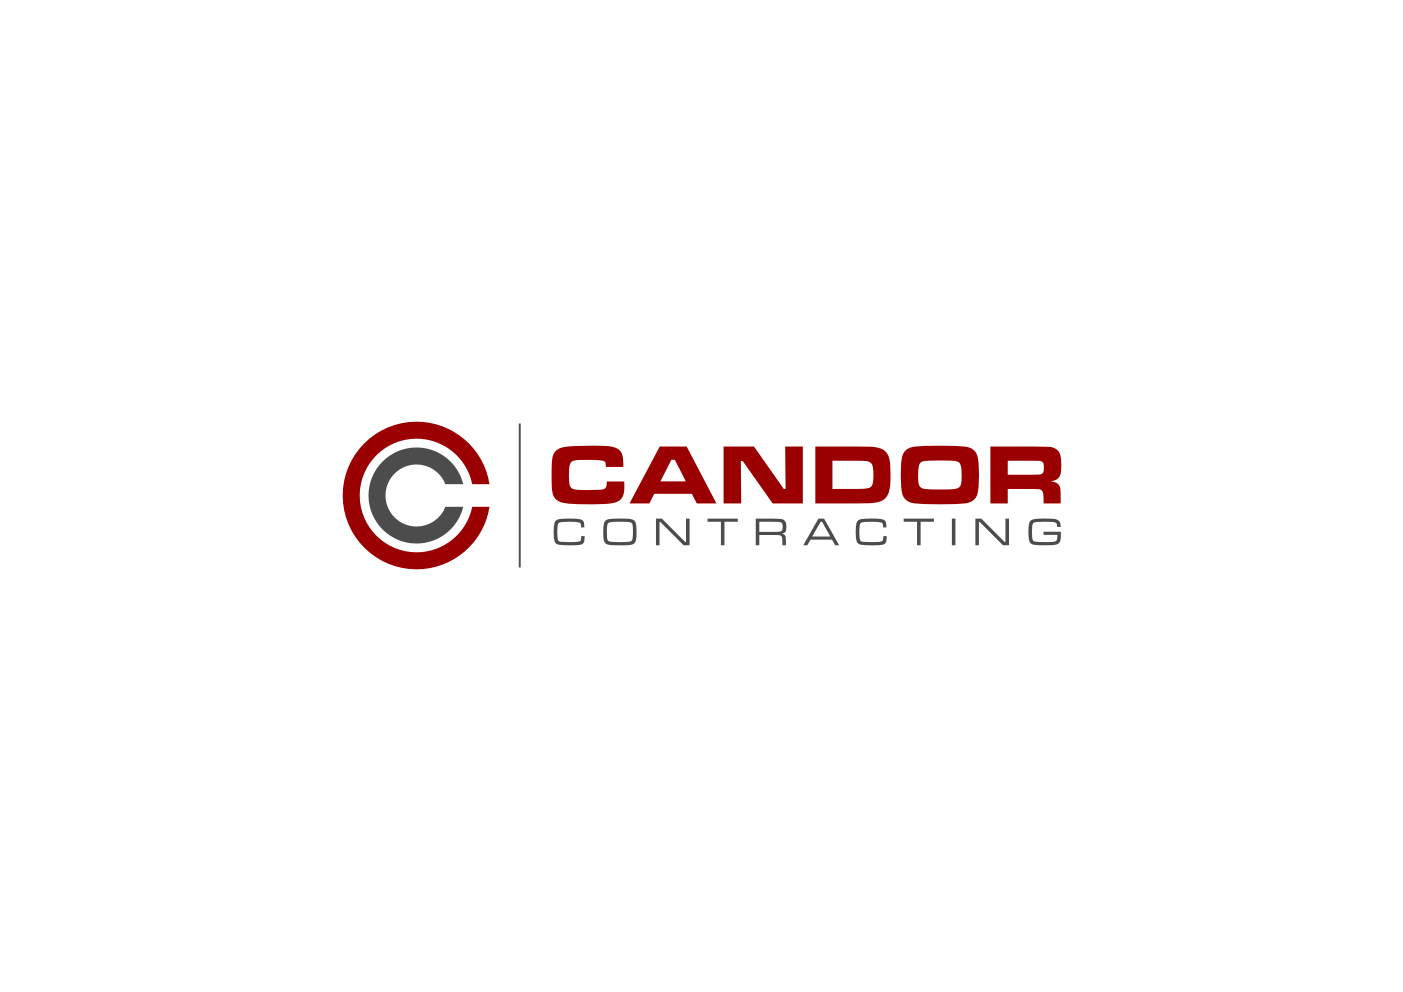 Logo Design by Ekarini Puspitasari - Entry No. 6 in the Logo Design Contest Unique Logo Design Wanted for Candor Contracting.